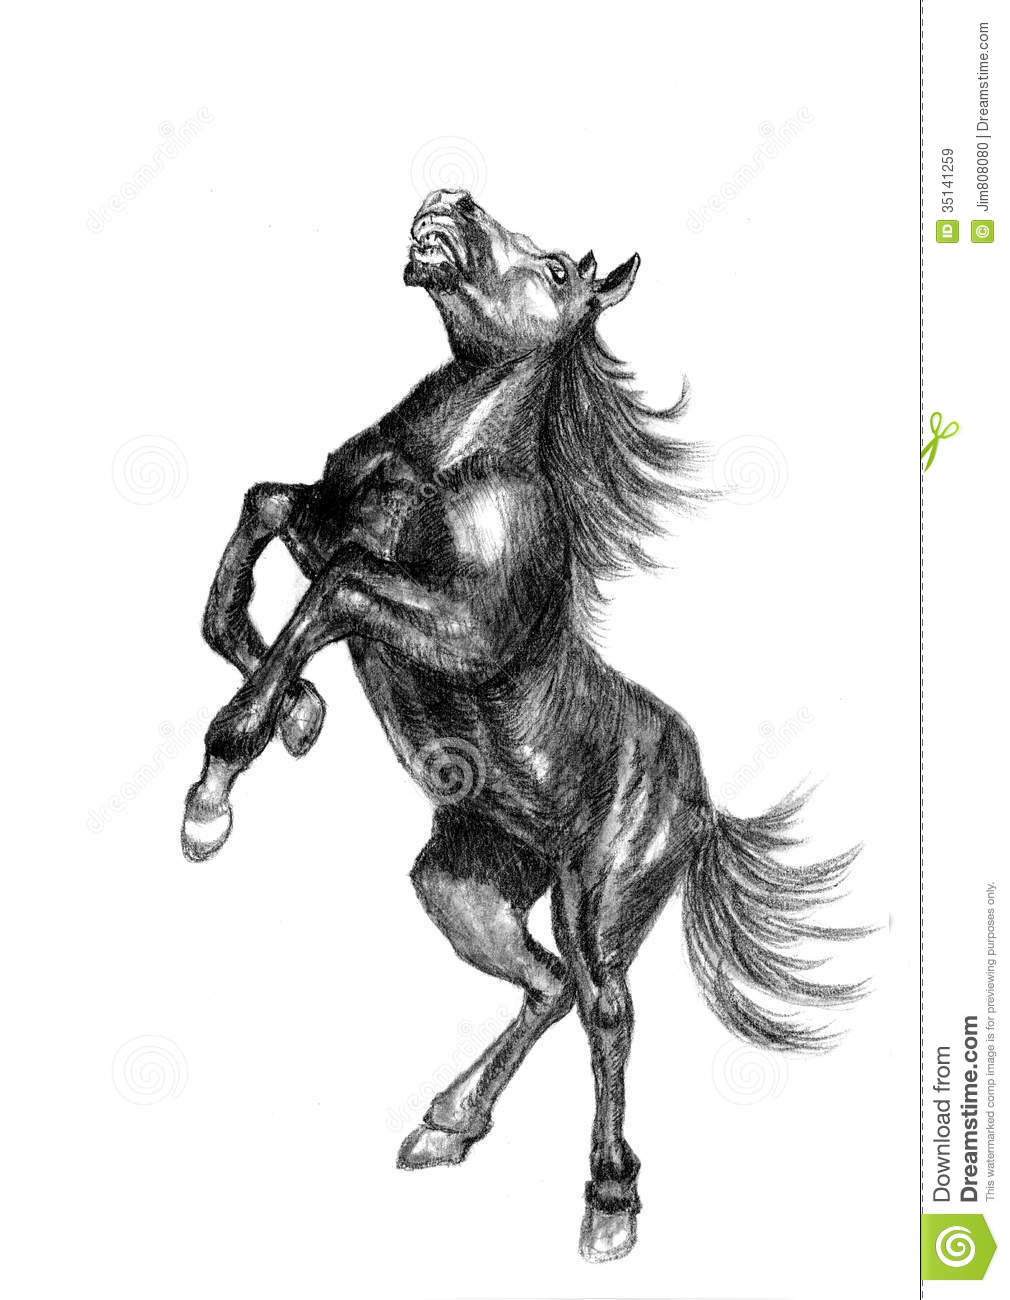 Horse Sketch Royalty Free Stock Images - Image: 35141259